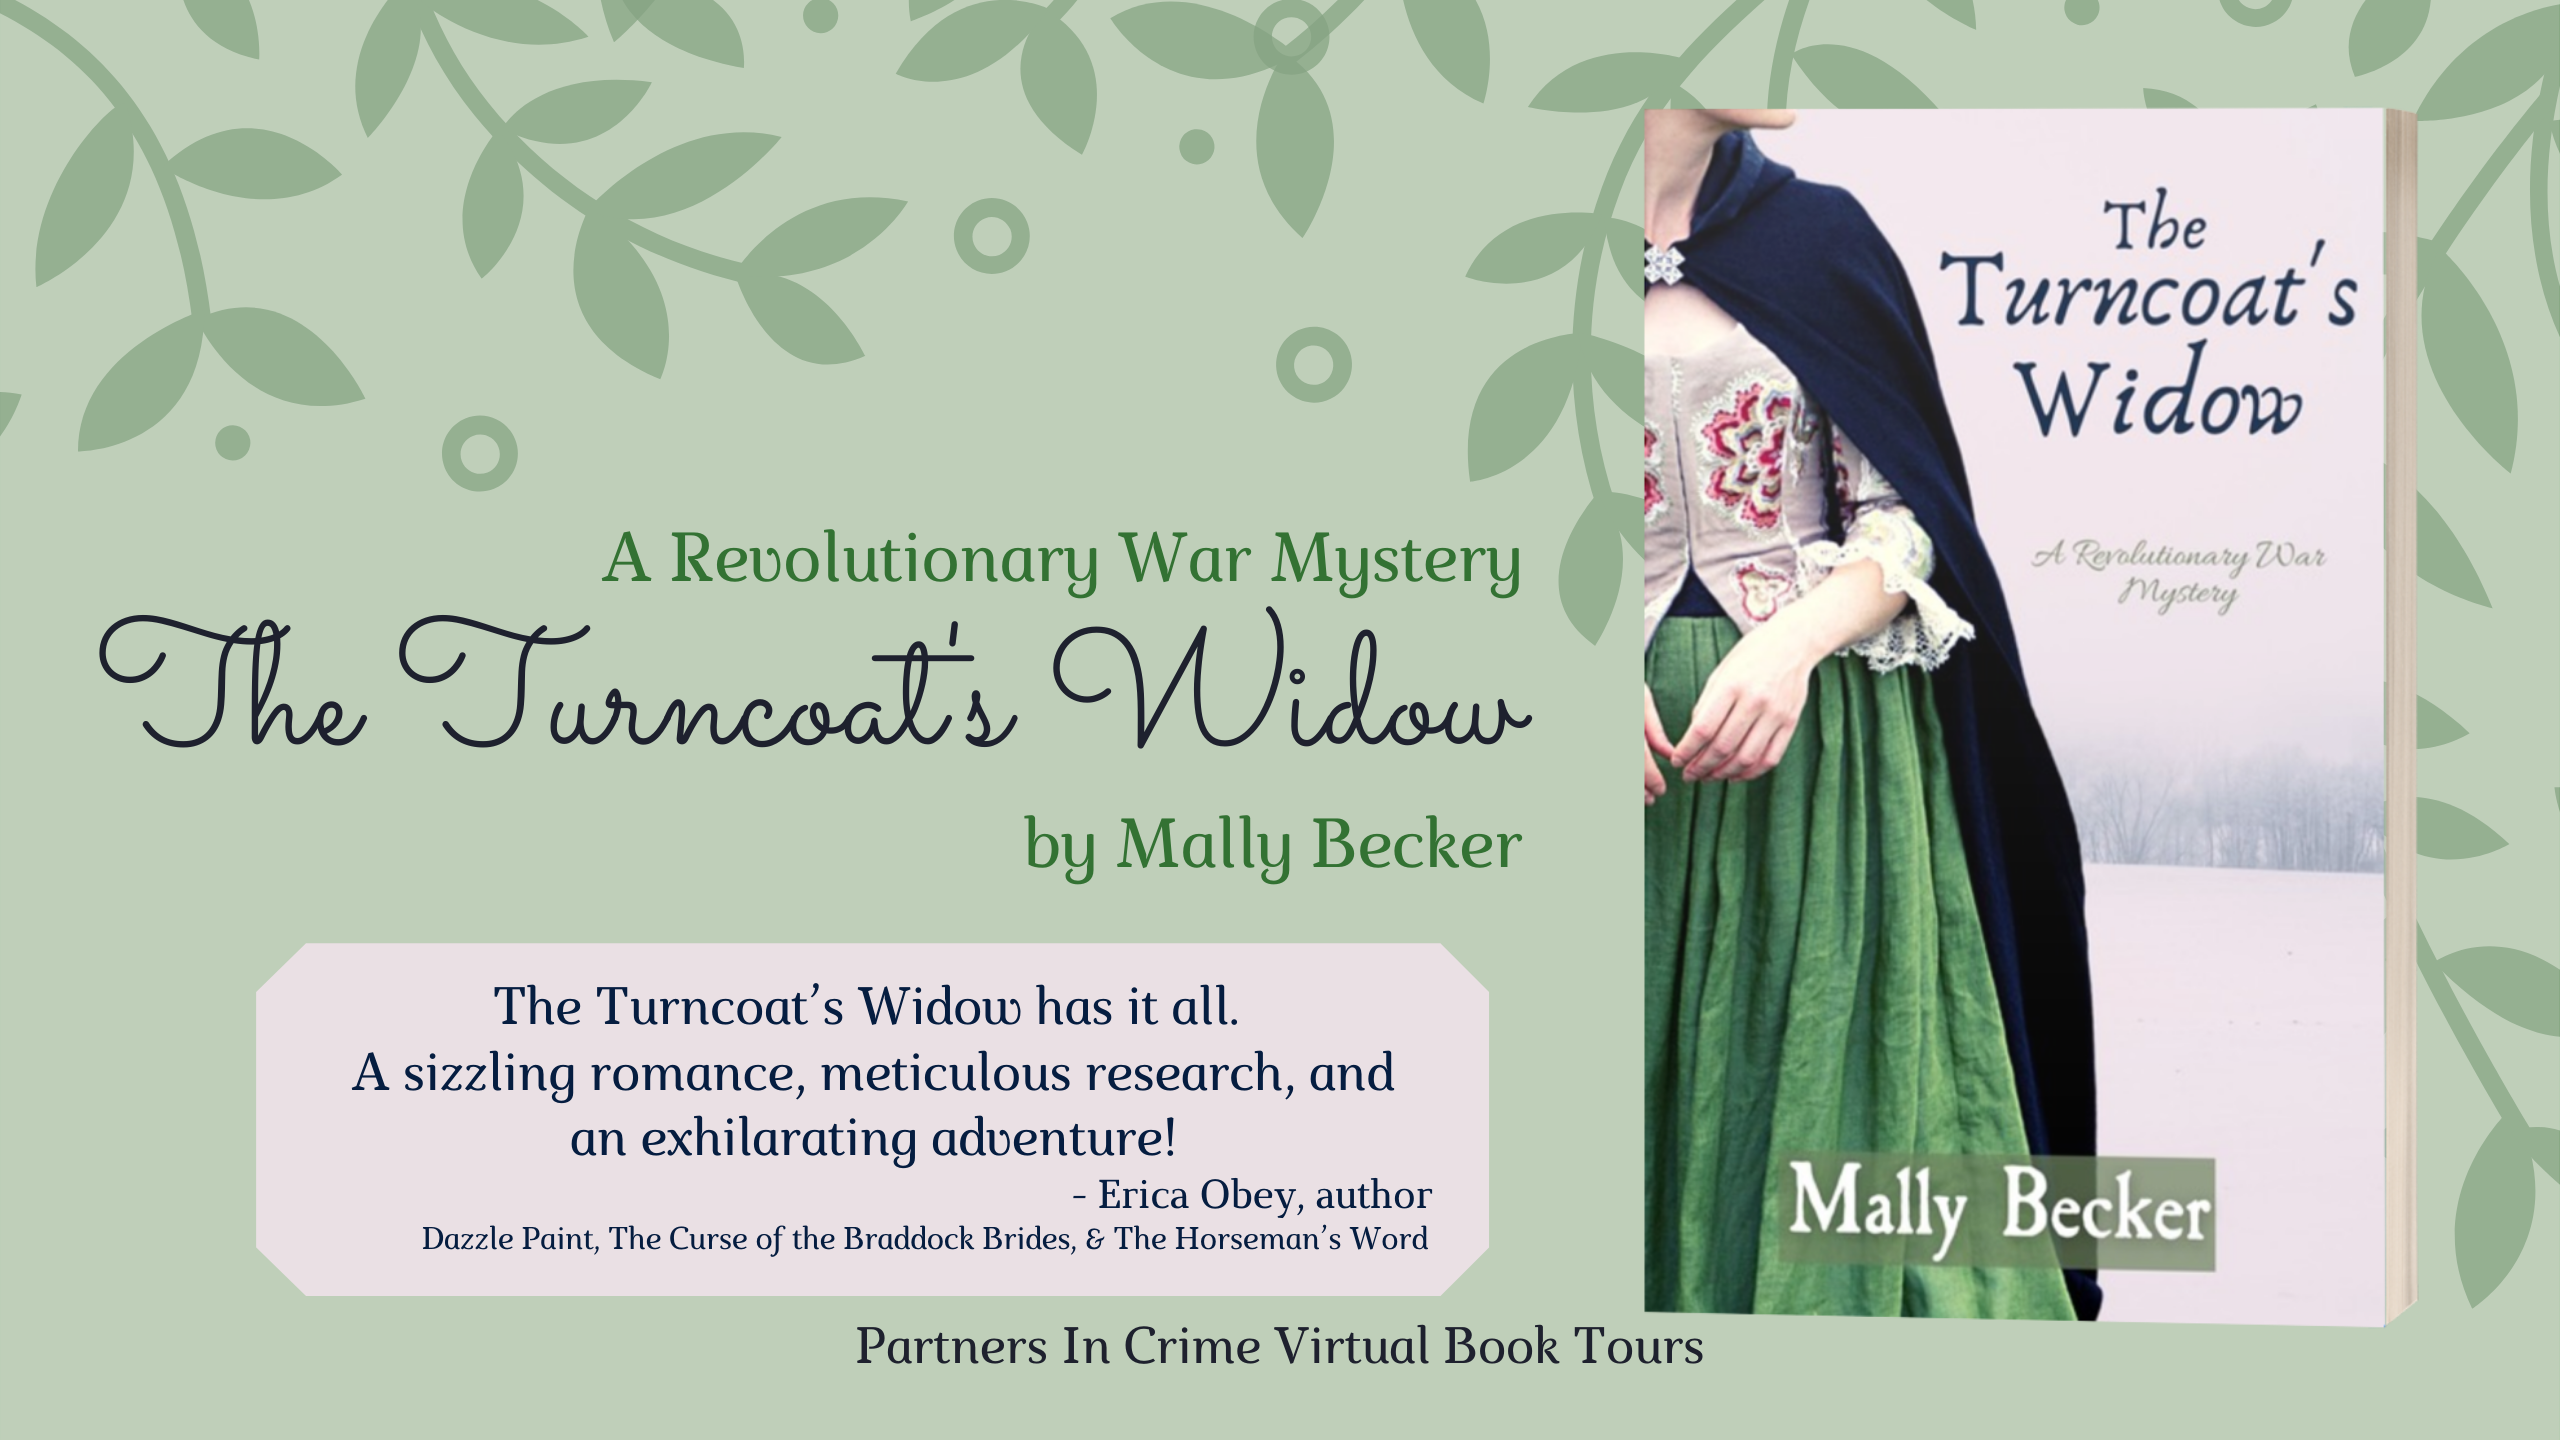 the-turncoat's-widow-by-mally-becker--banner